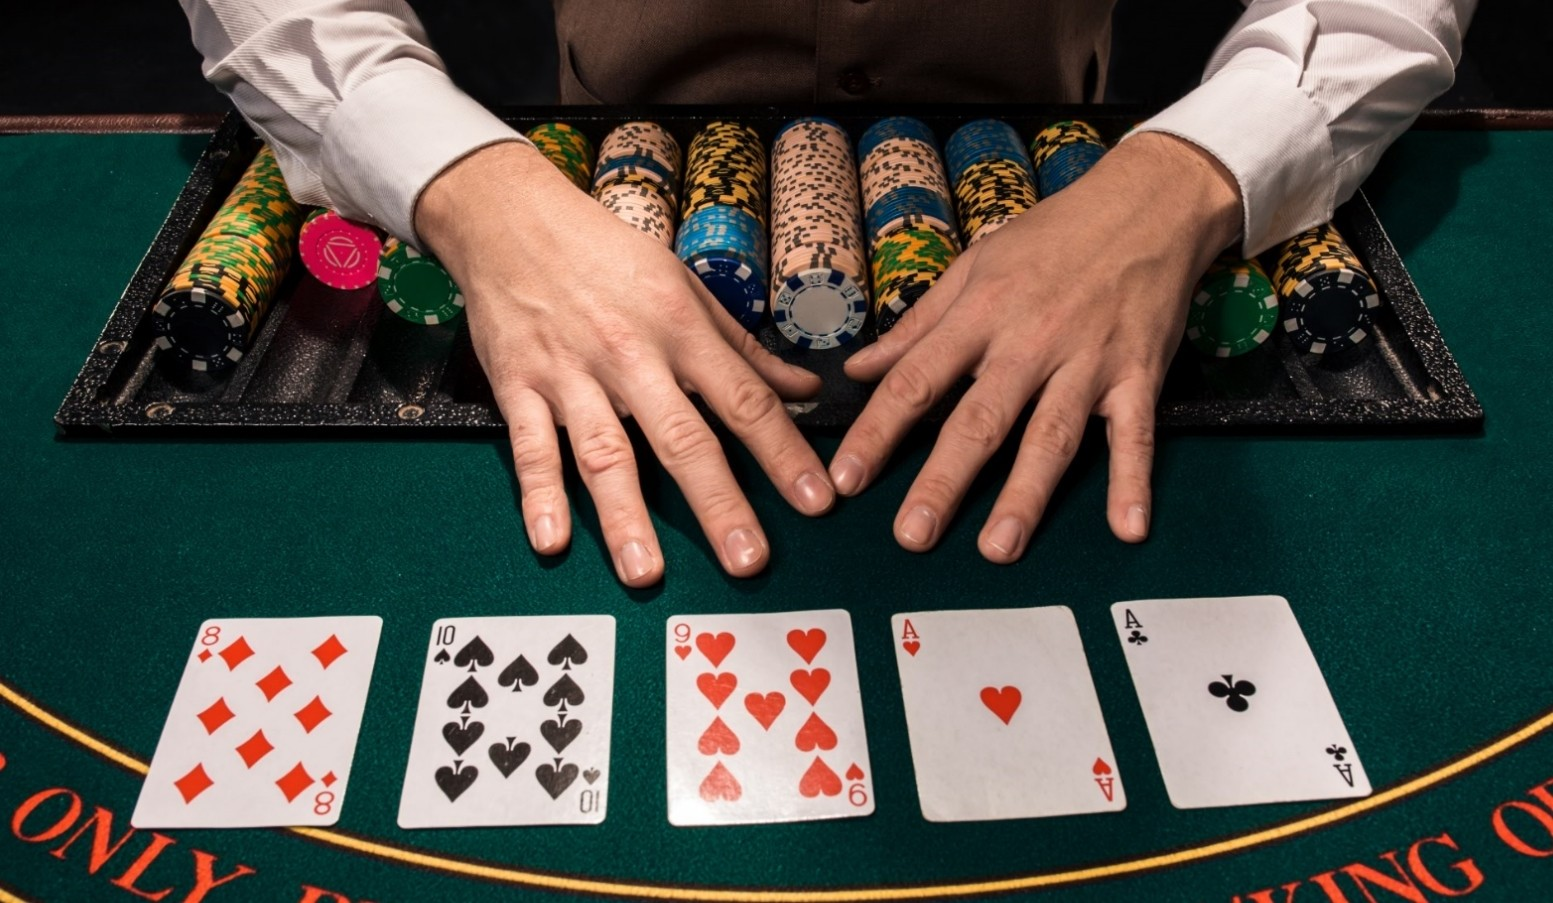 How to become a Pro Poker Player?